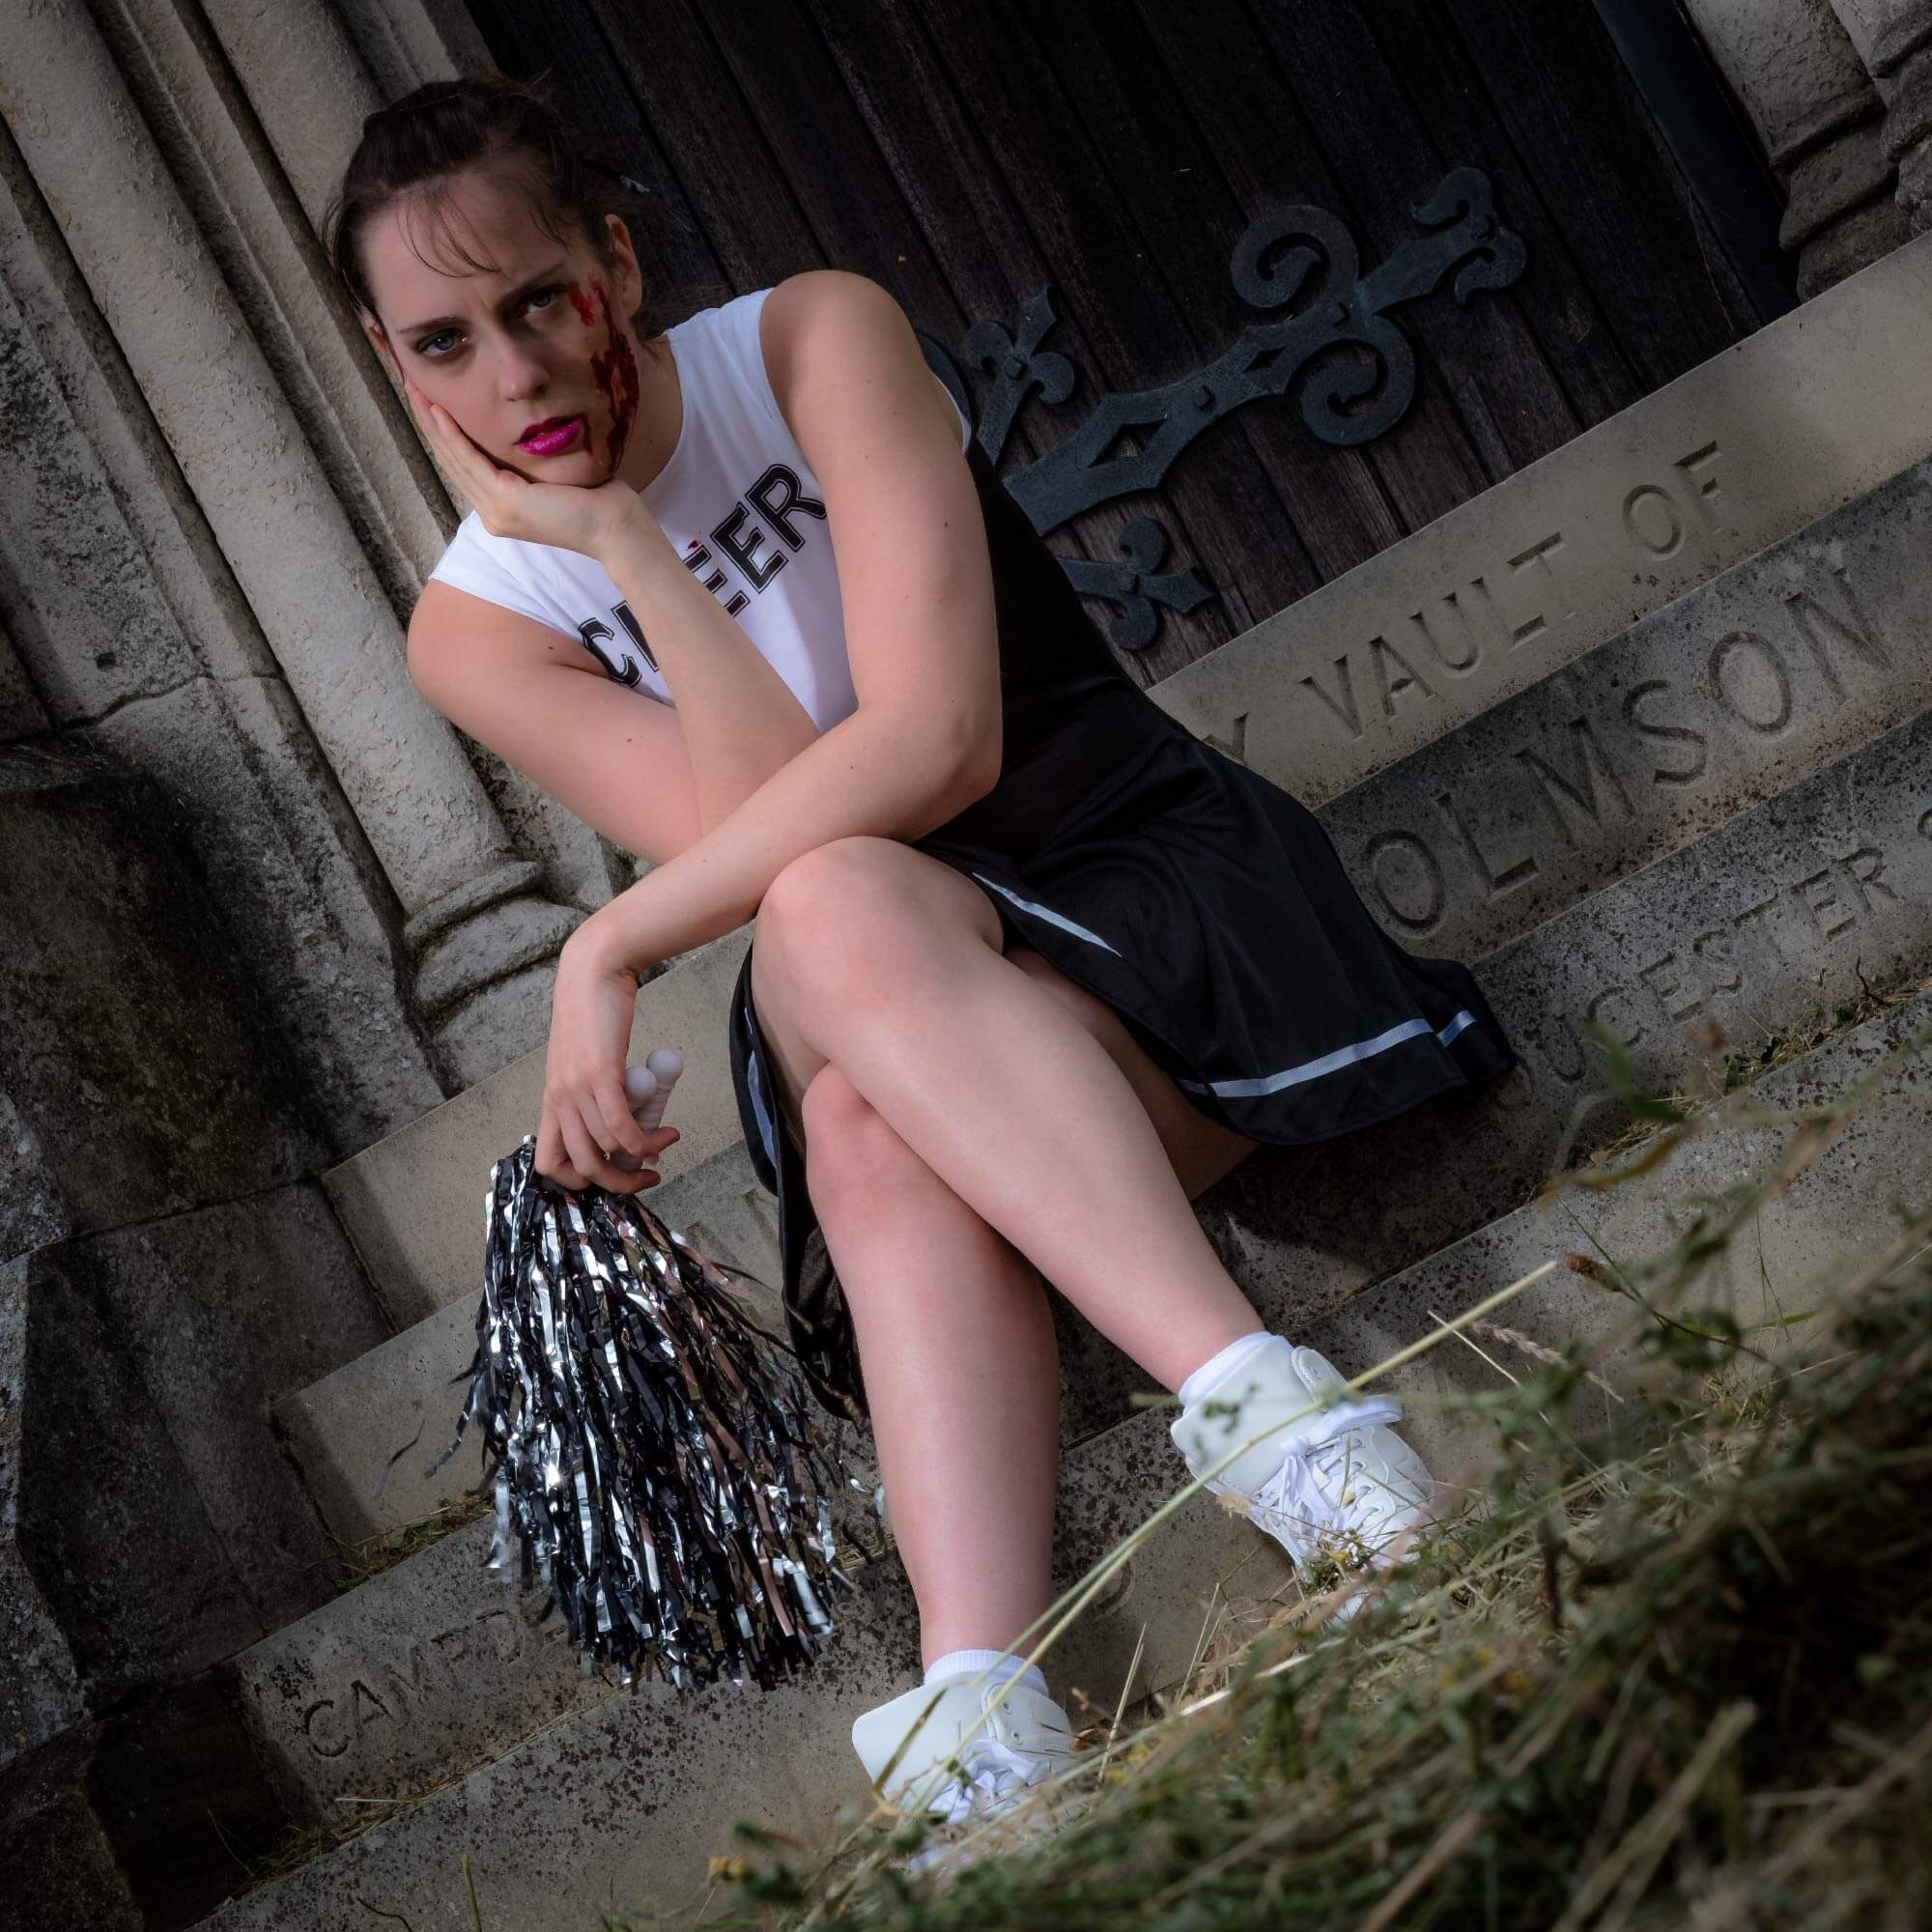 Horror makeup. A cheerleader with blood and scars sits on some steps.